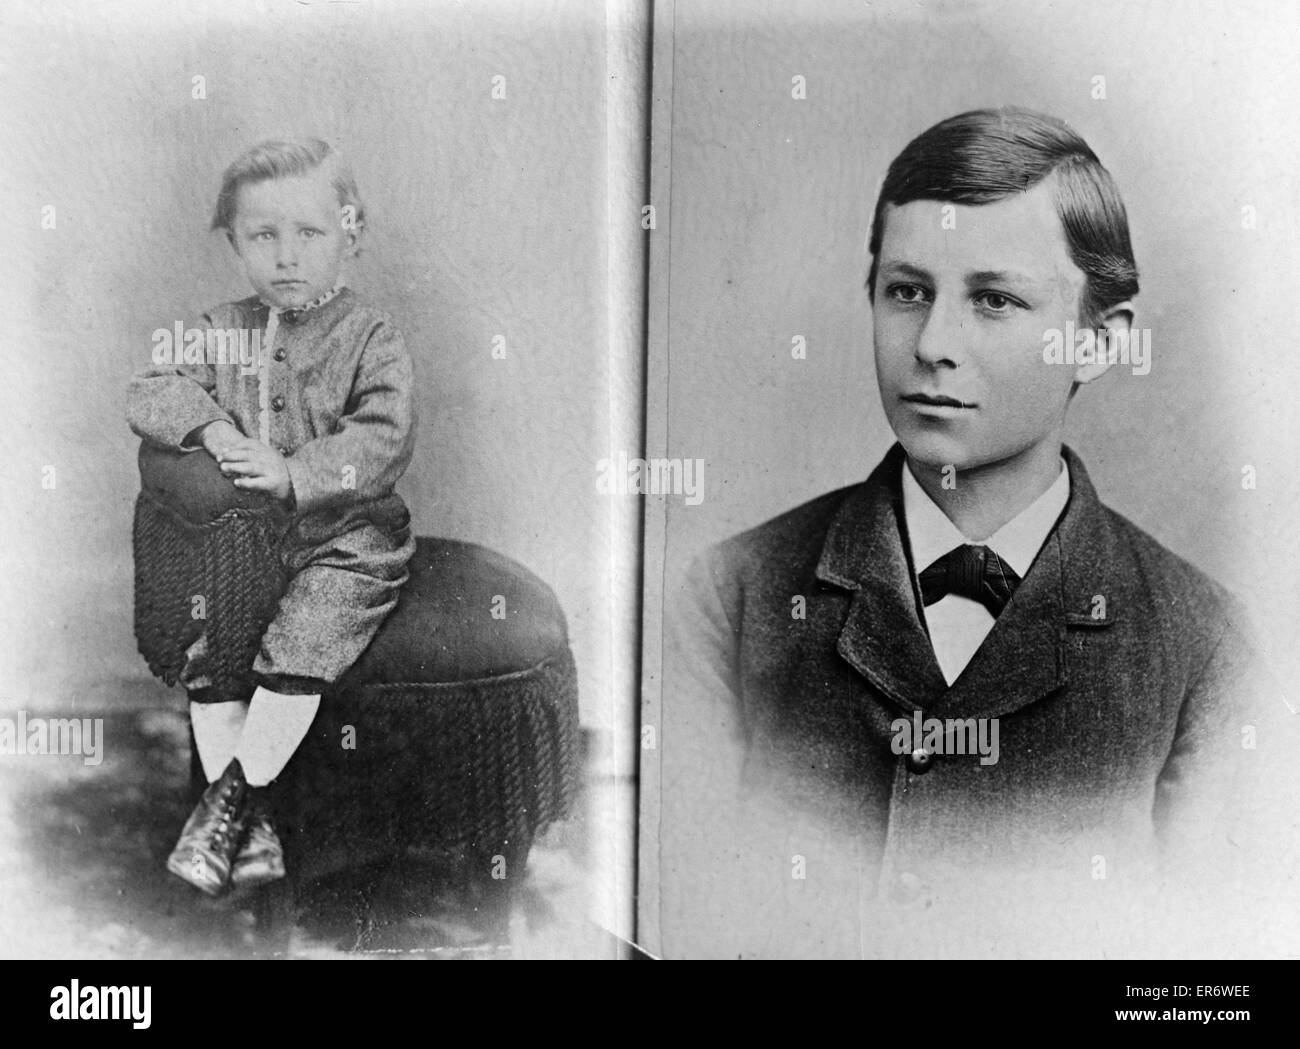 Childhood portraits of Wilbur Wright. Date between 1901 and 1928. - Stock Image